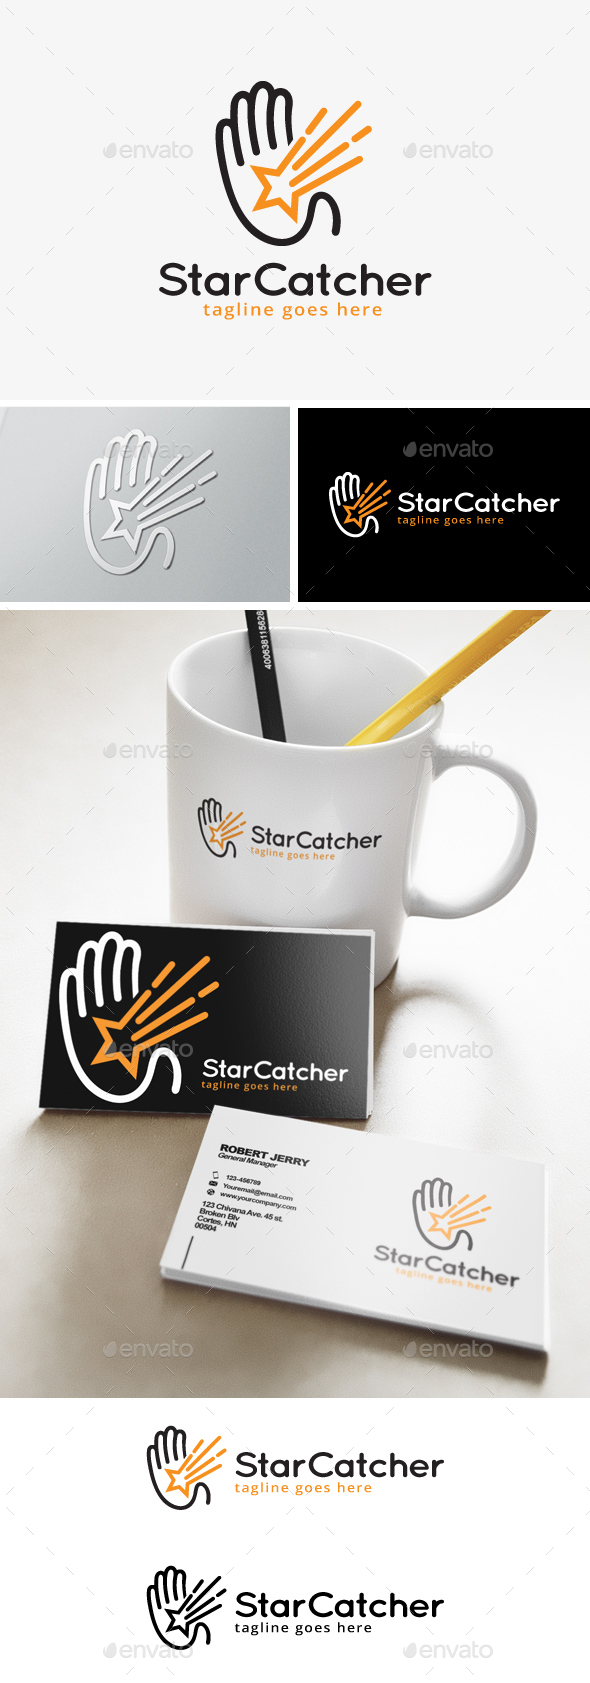 Star Catcher Logo